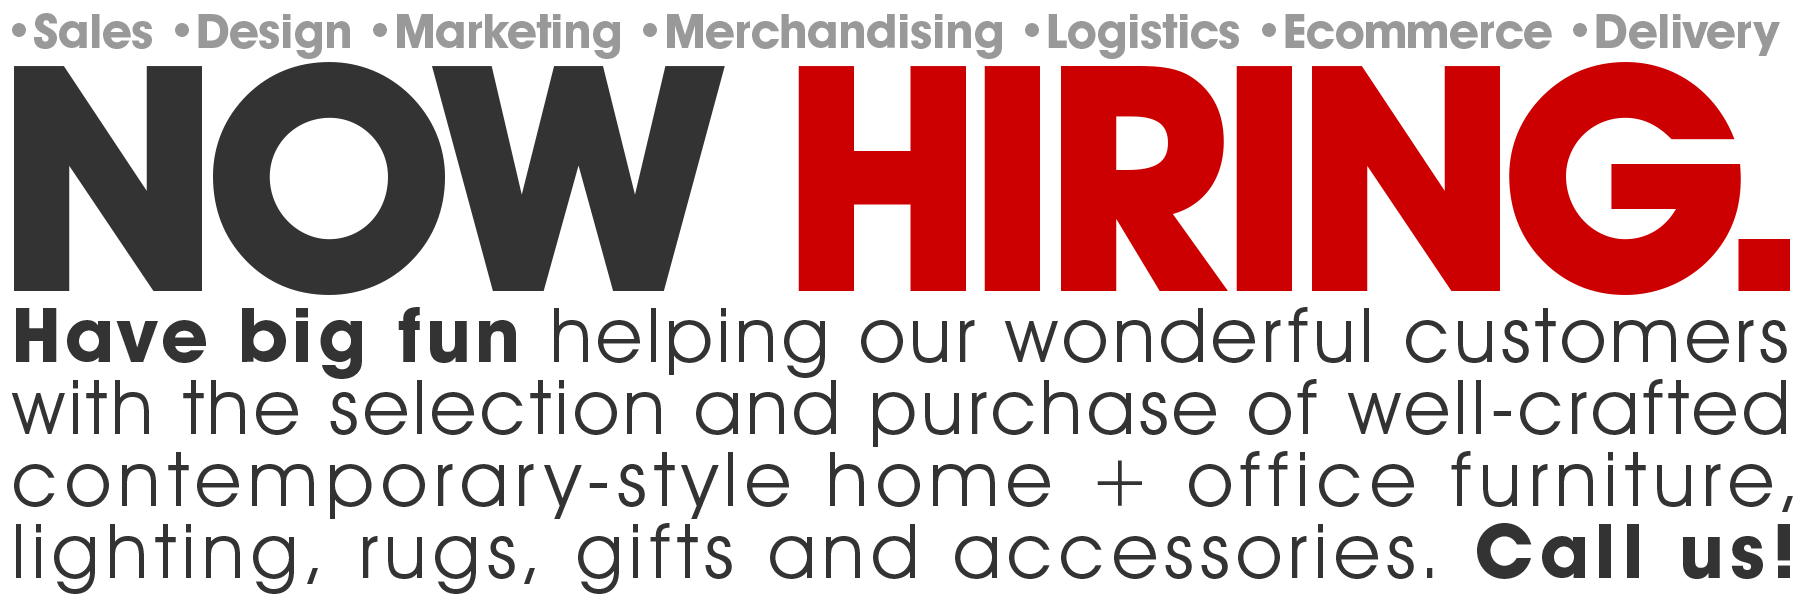 CollecticHome is now hiring! | Learn More >